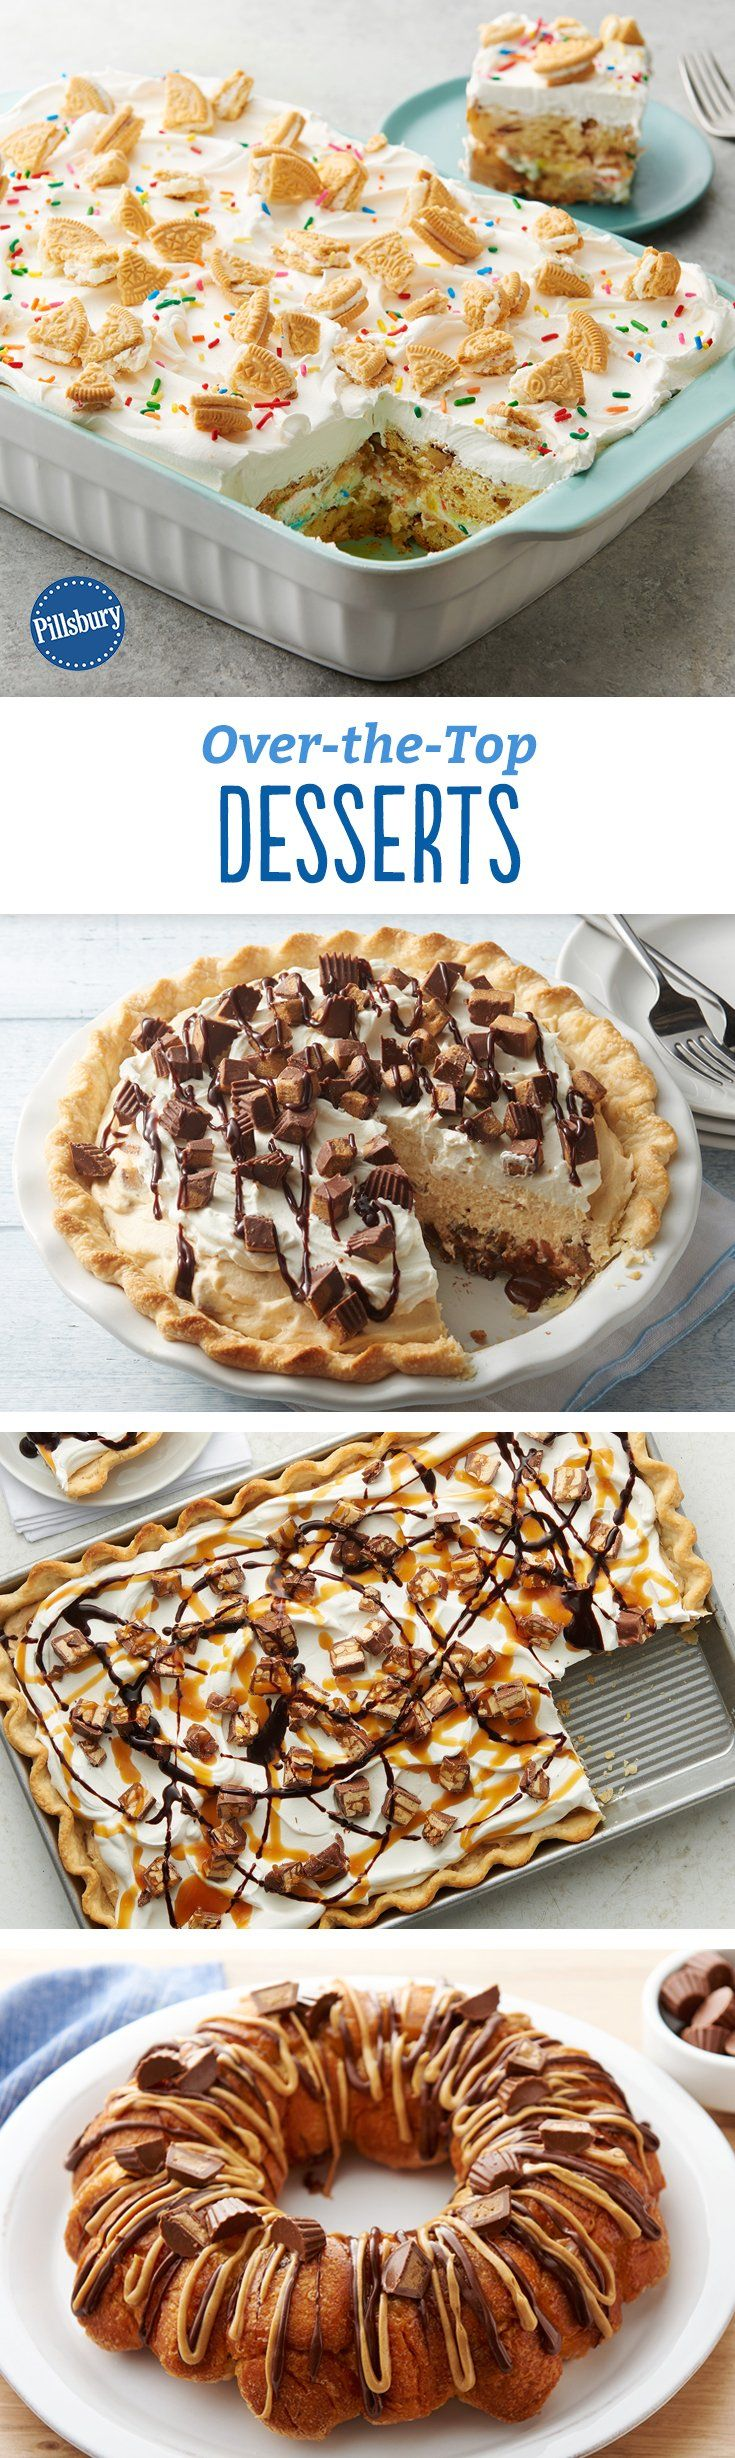 These recipes are our most outrageous desserts yet. (Yes, that does include the time we stuffed an Oreo™ in a crescent). And by outrageous, we mean crazy-delicious: from a birthday cake-inspired layered cinnamon roll breakfast dish to a slab pie smothered in caramel and topped with Snickers™, you're going to want to try these delightful recipes.